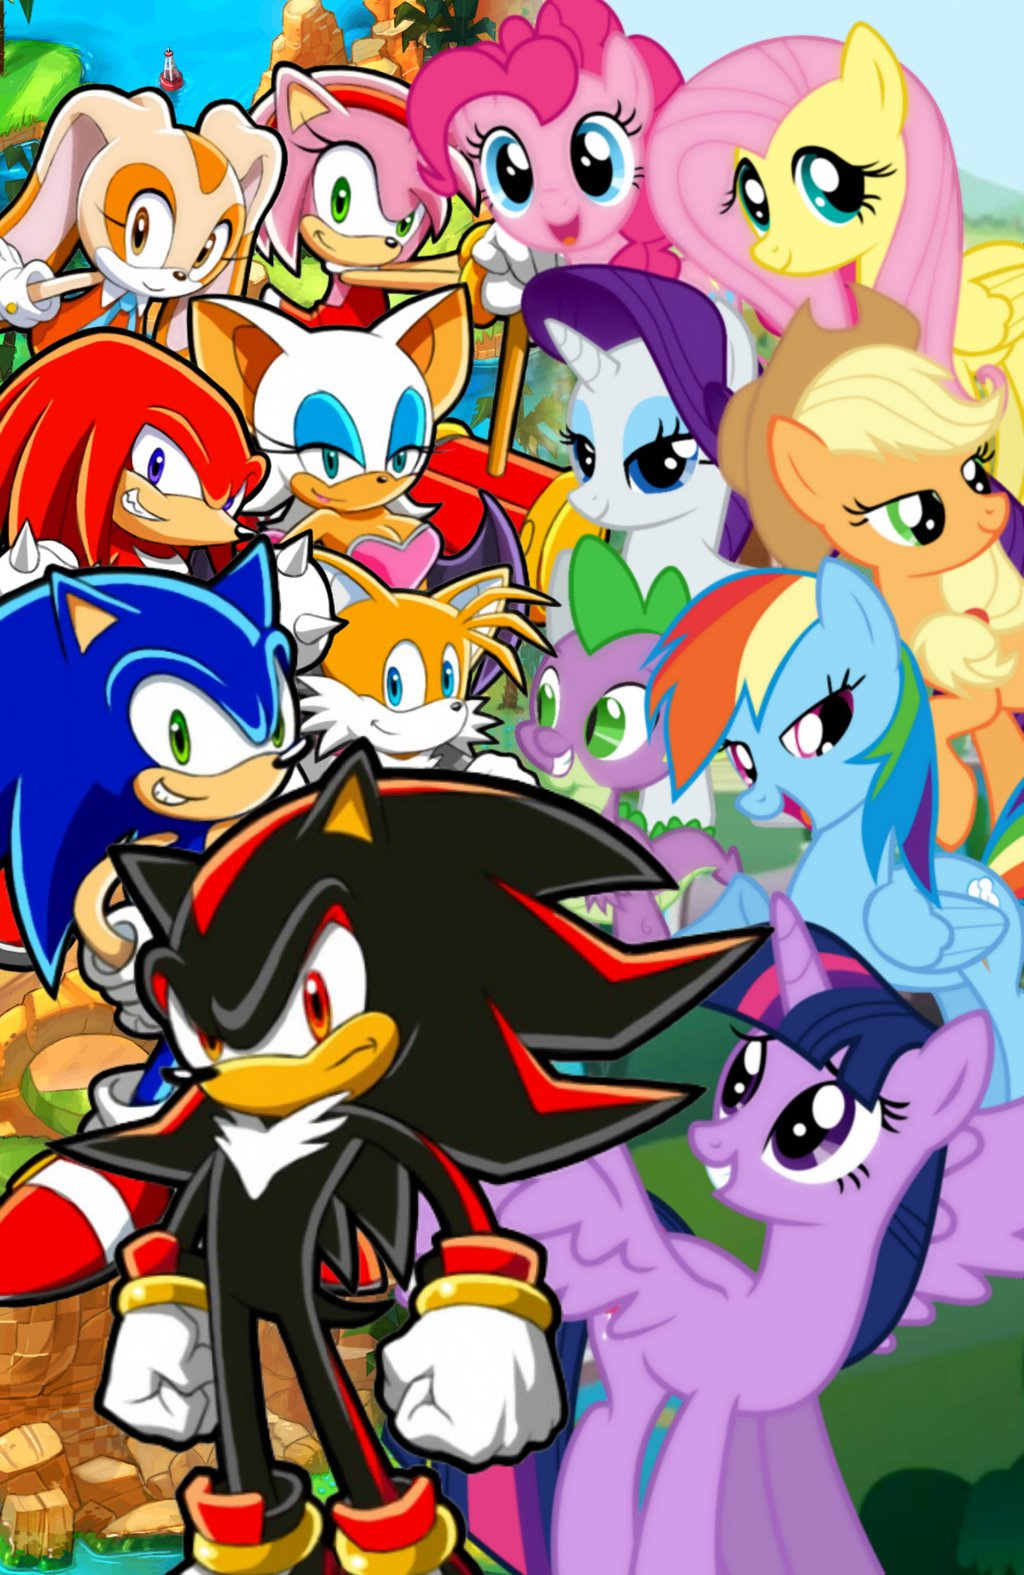 Drawn my little pony sonic amy Xovers by Little My Friendship